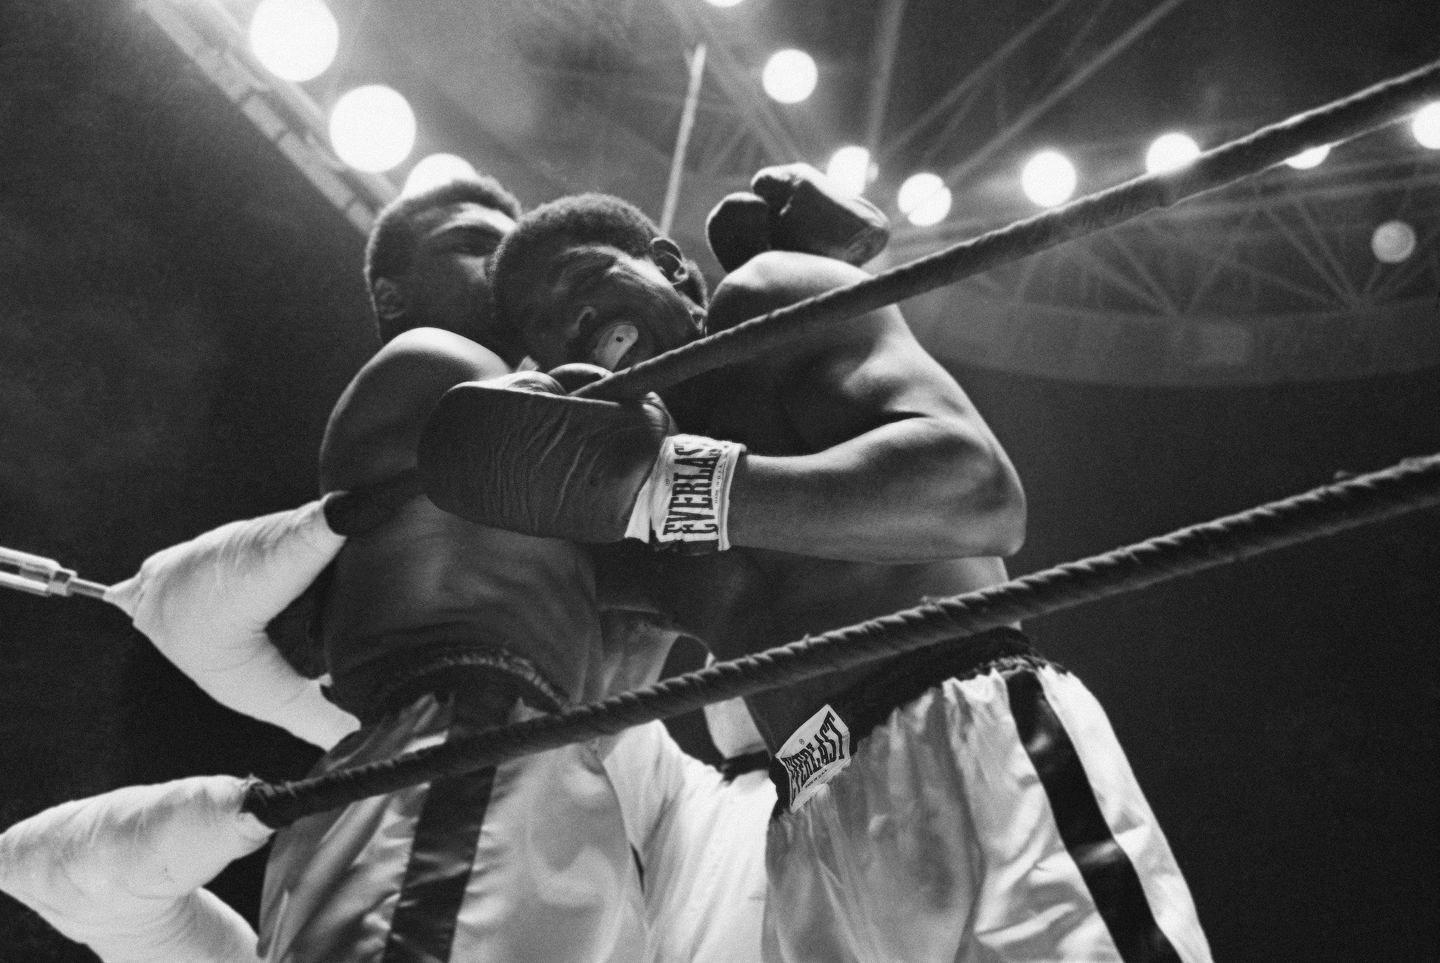 Ernie Terrell is bent over the ring rope by Muhammad Ali in the third round of their heavyweight title bout on Feb. 6, 1965 in Houston. Terrell suffered an eye injury that he said affected his vision and was caused by Ali rubbing his face across the rope.